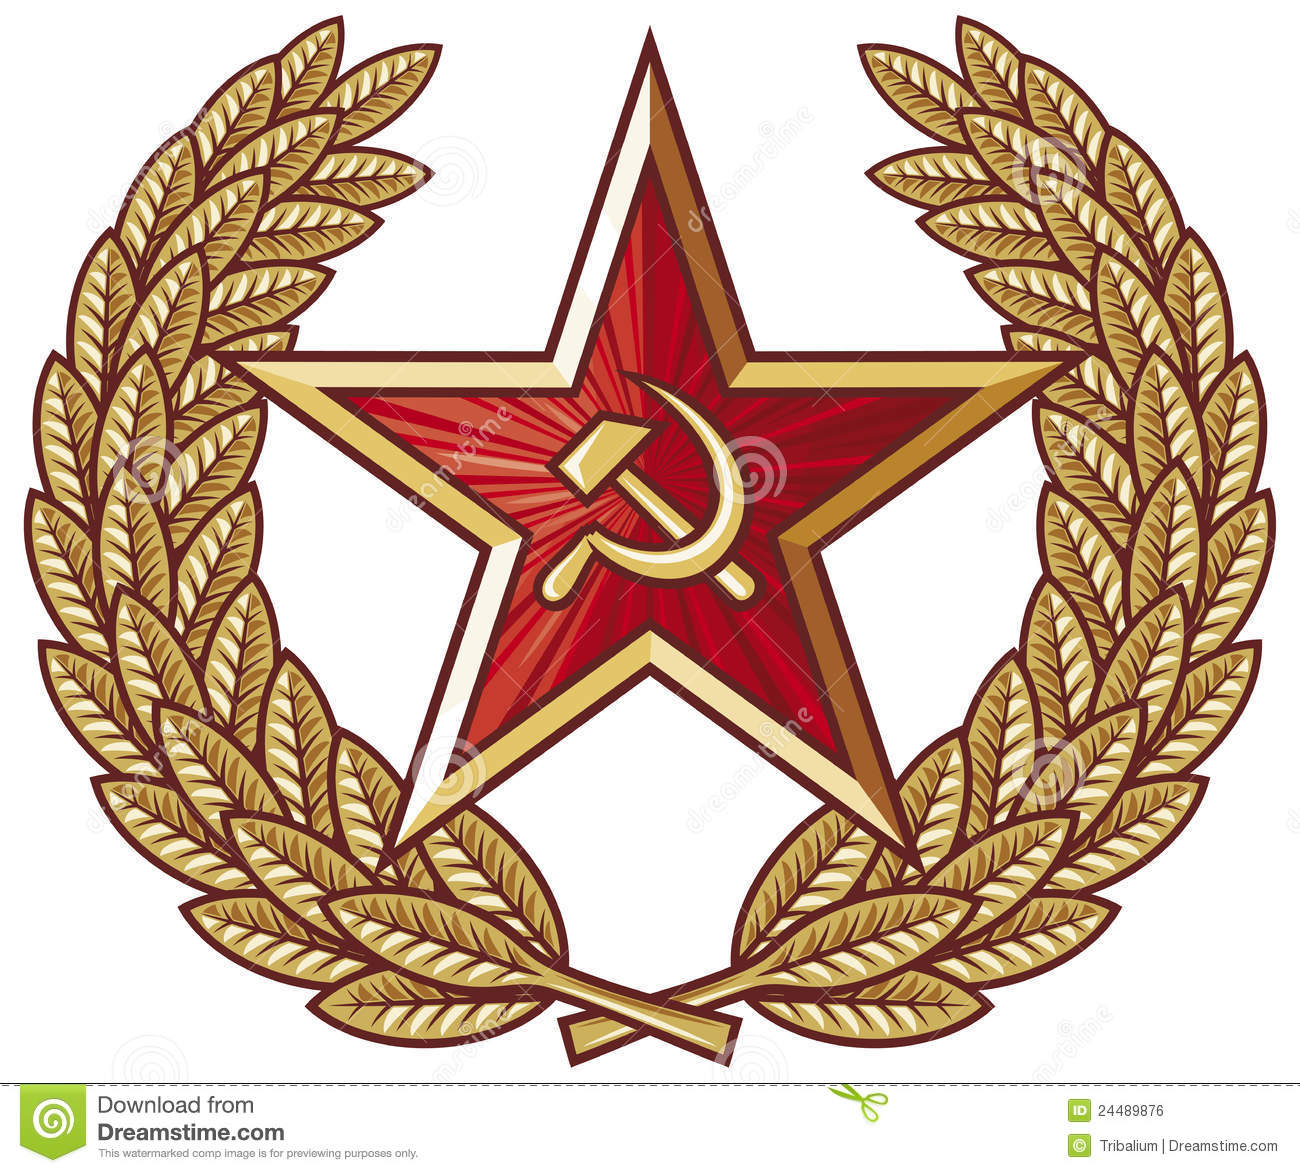 BACK TO THE USSR: Russia Reveals New Military Symbol Similar to ...